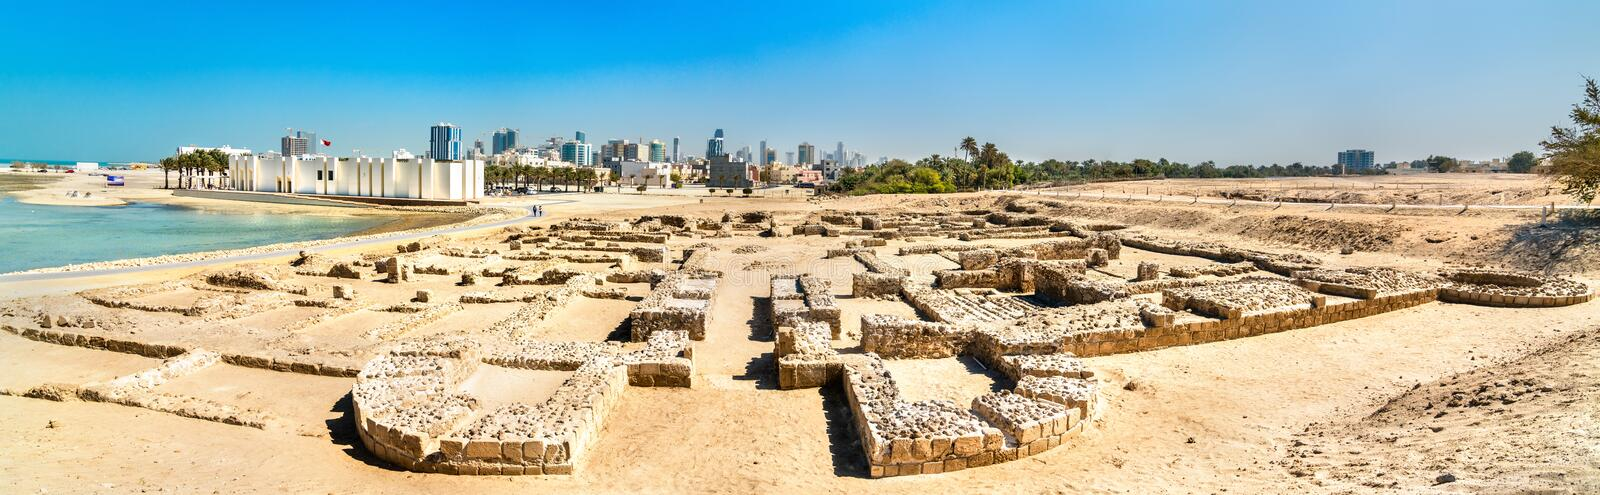 Ancient ruins at Bahrain Fort. A UNESCO World Heritage Site stock photos